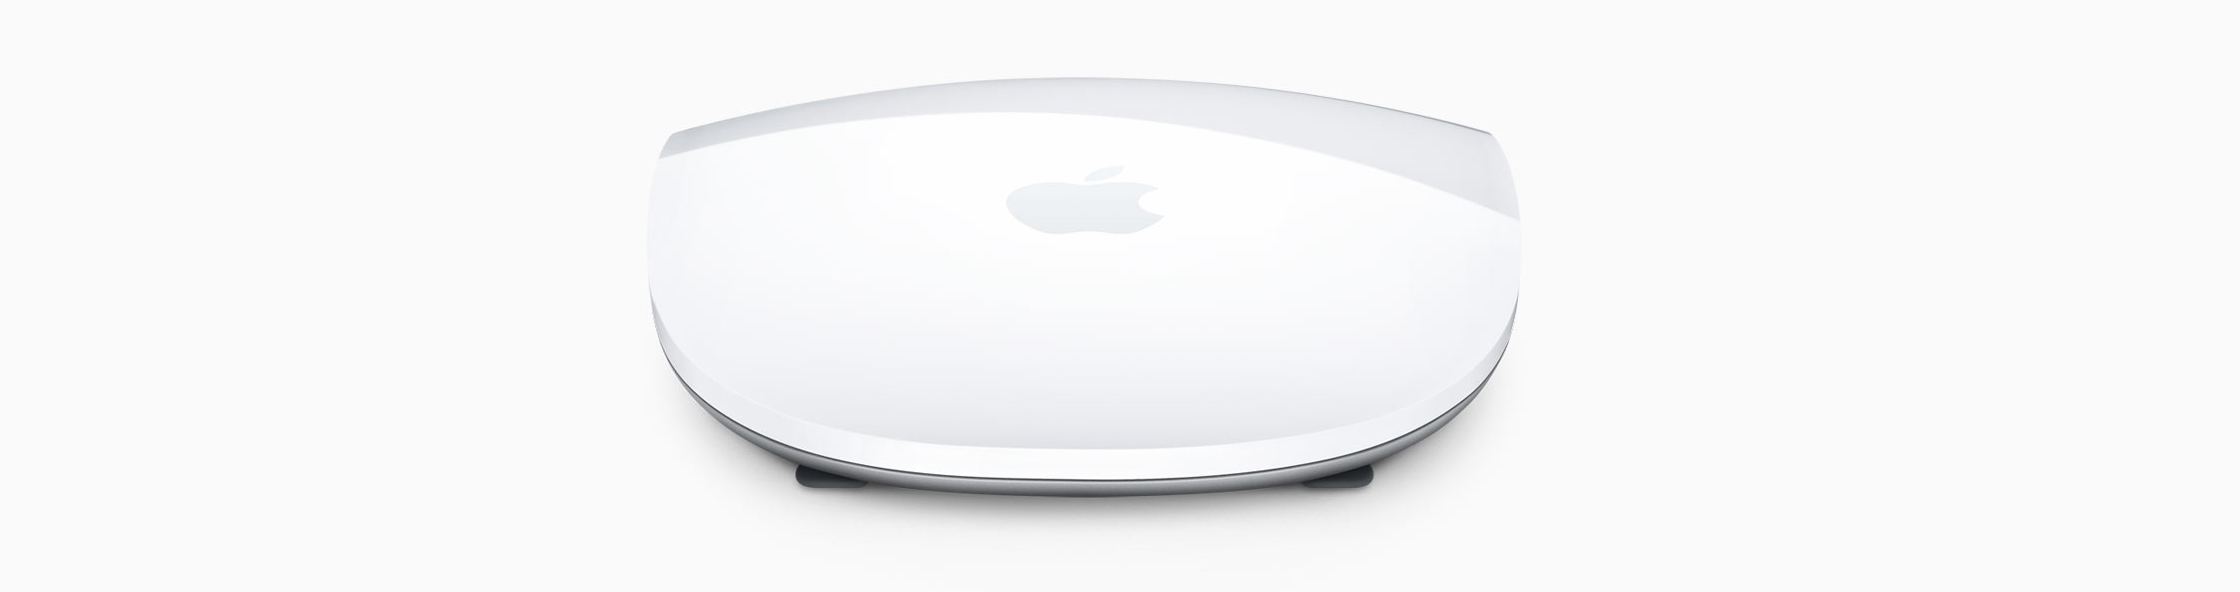 Screen Shot 2015 10 13 at 10.09.54 PM - Apple launches the Magic Trackpad 2 with Force Touch, Magic Mouse 2 & Magic Keyboard